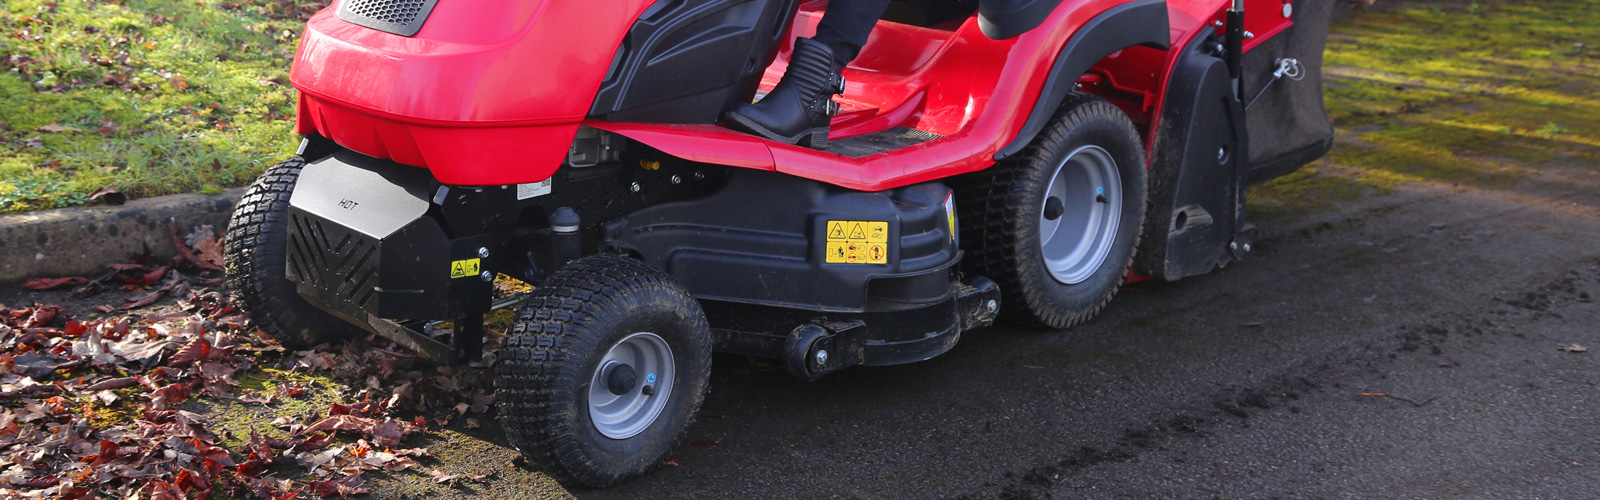 Countax lawn garden tractor mower accessory hard surface brush cassette in use